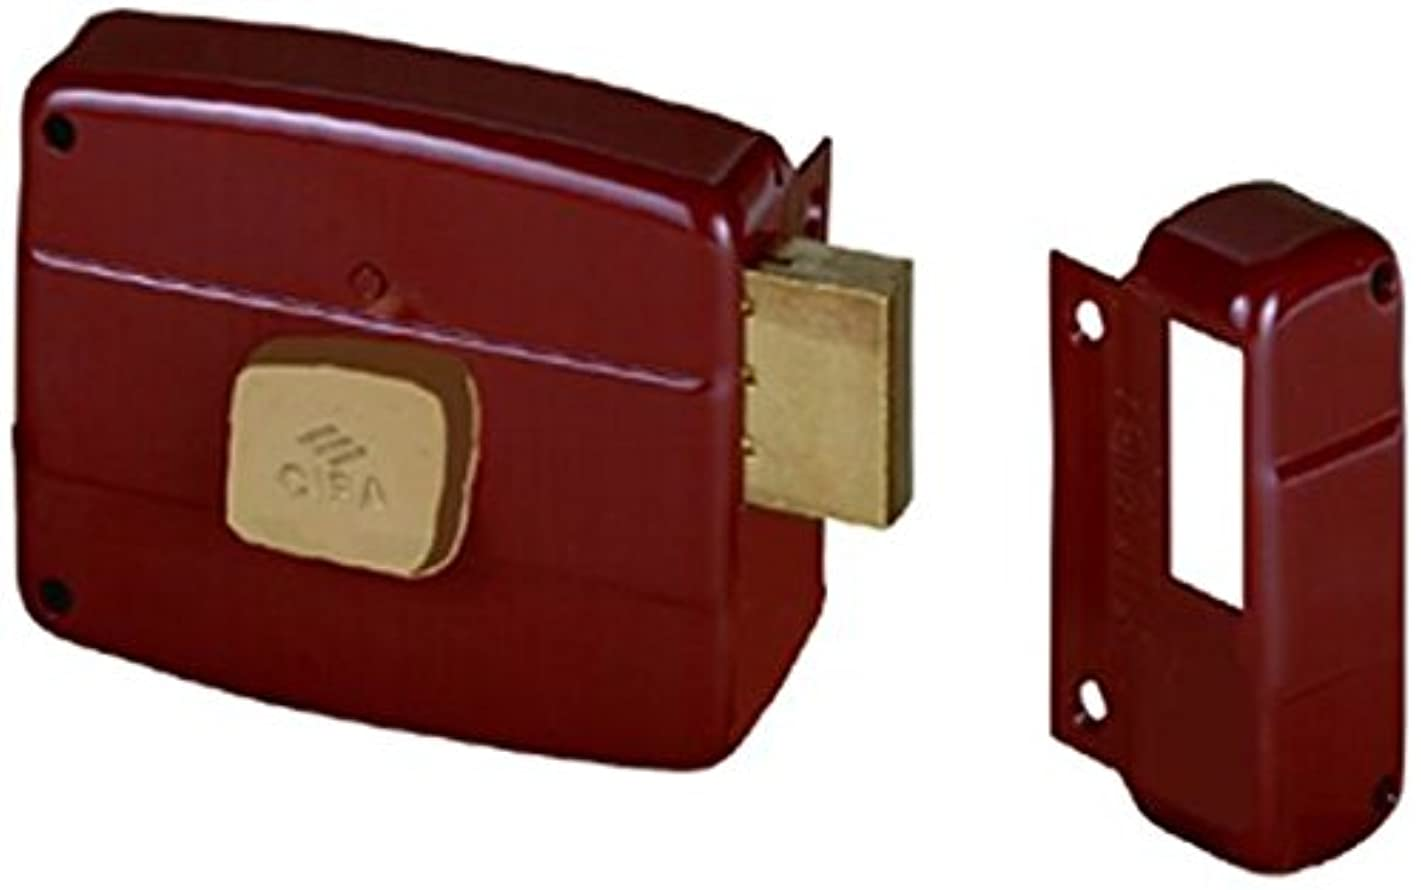 Cisa 50131 Lock to Apply to Wooden Doors, Right Entry, 60mm